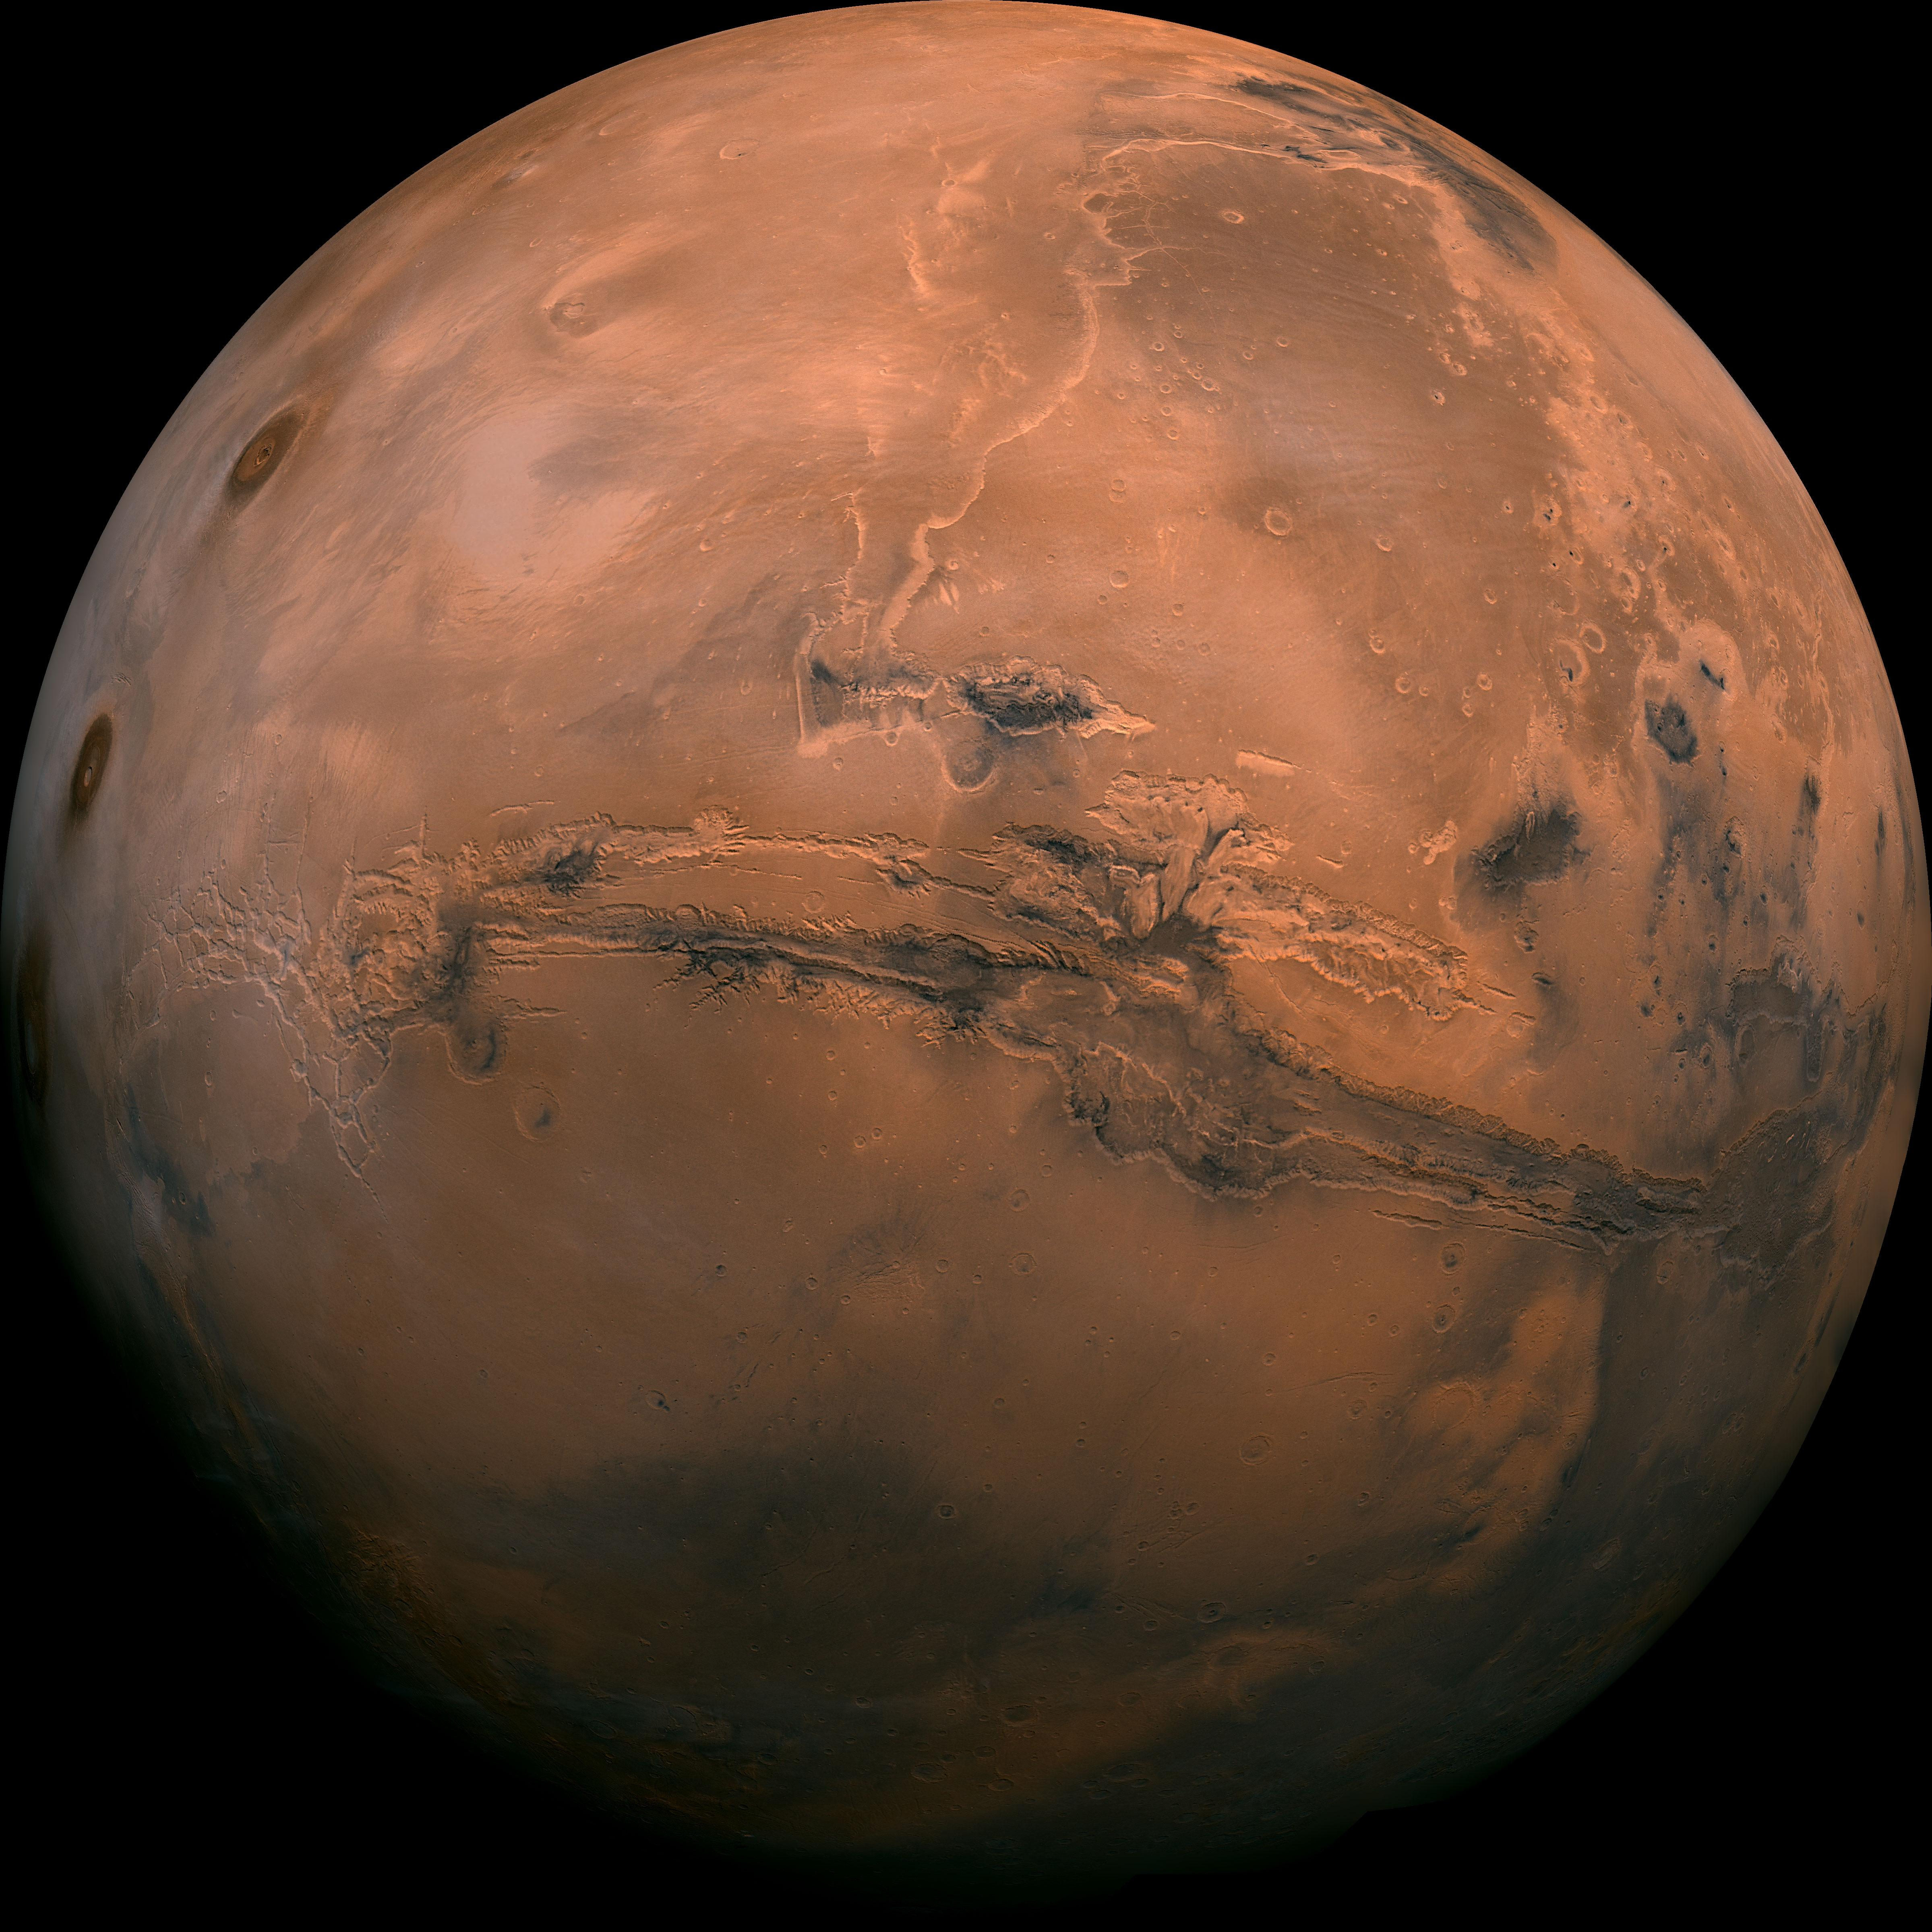 mars-globe-valles-marineris-enhanced-full.jpg